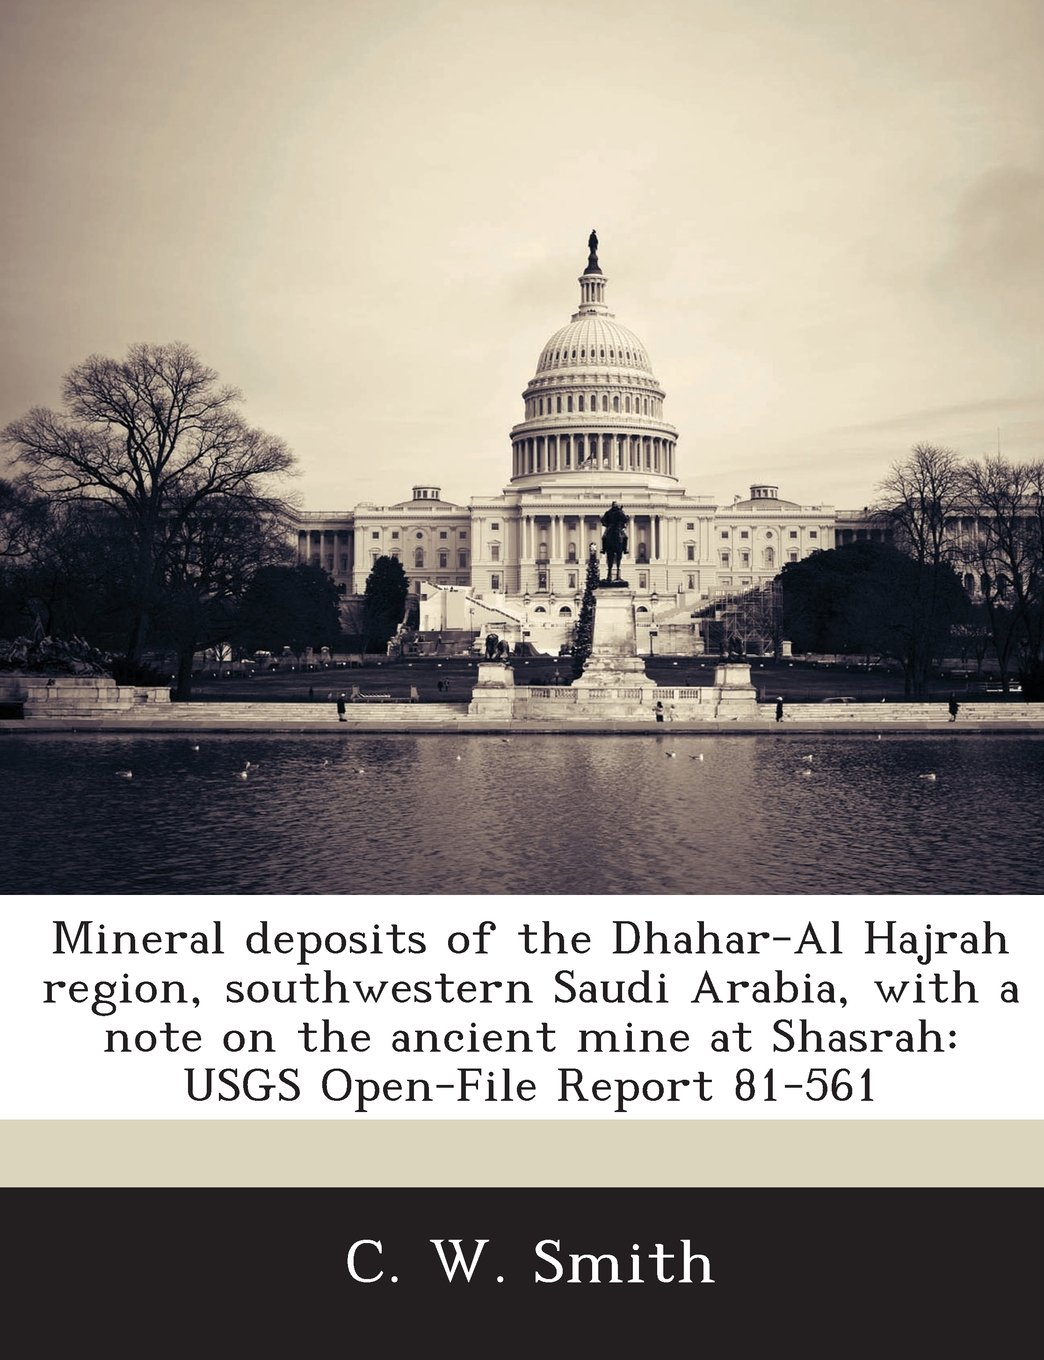 Download Mineral deposits of the Dhahar-Al Hajrah region, southwestern Saudi Arabia, with a note on the ancient mine at Shasrah: USGS Open-File Report 81-561 pdf